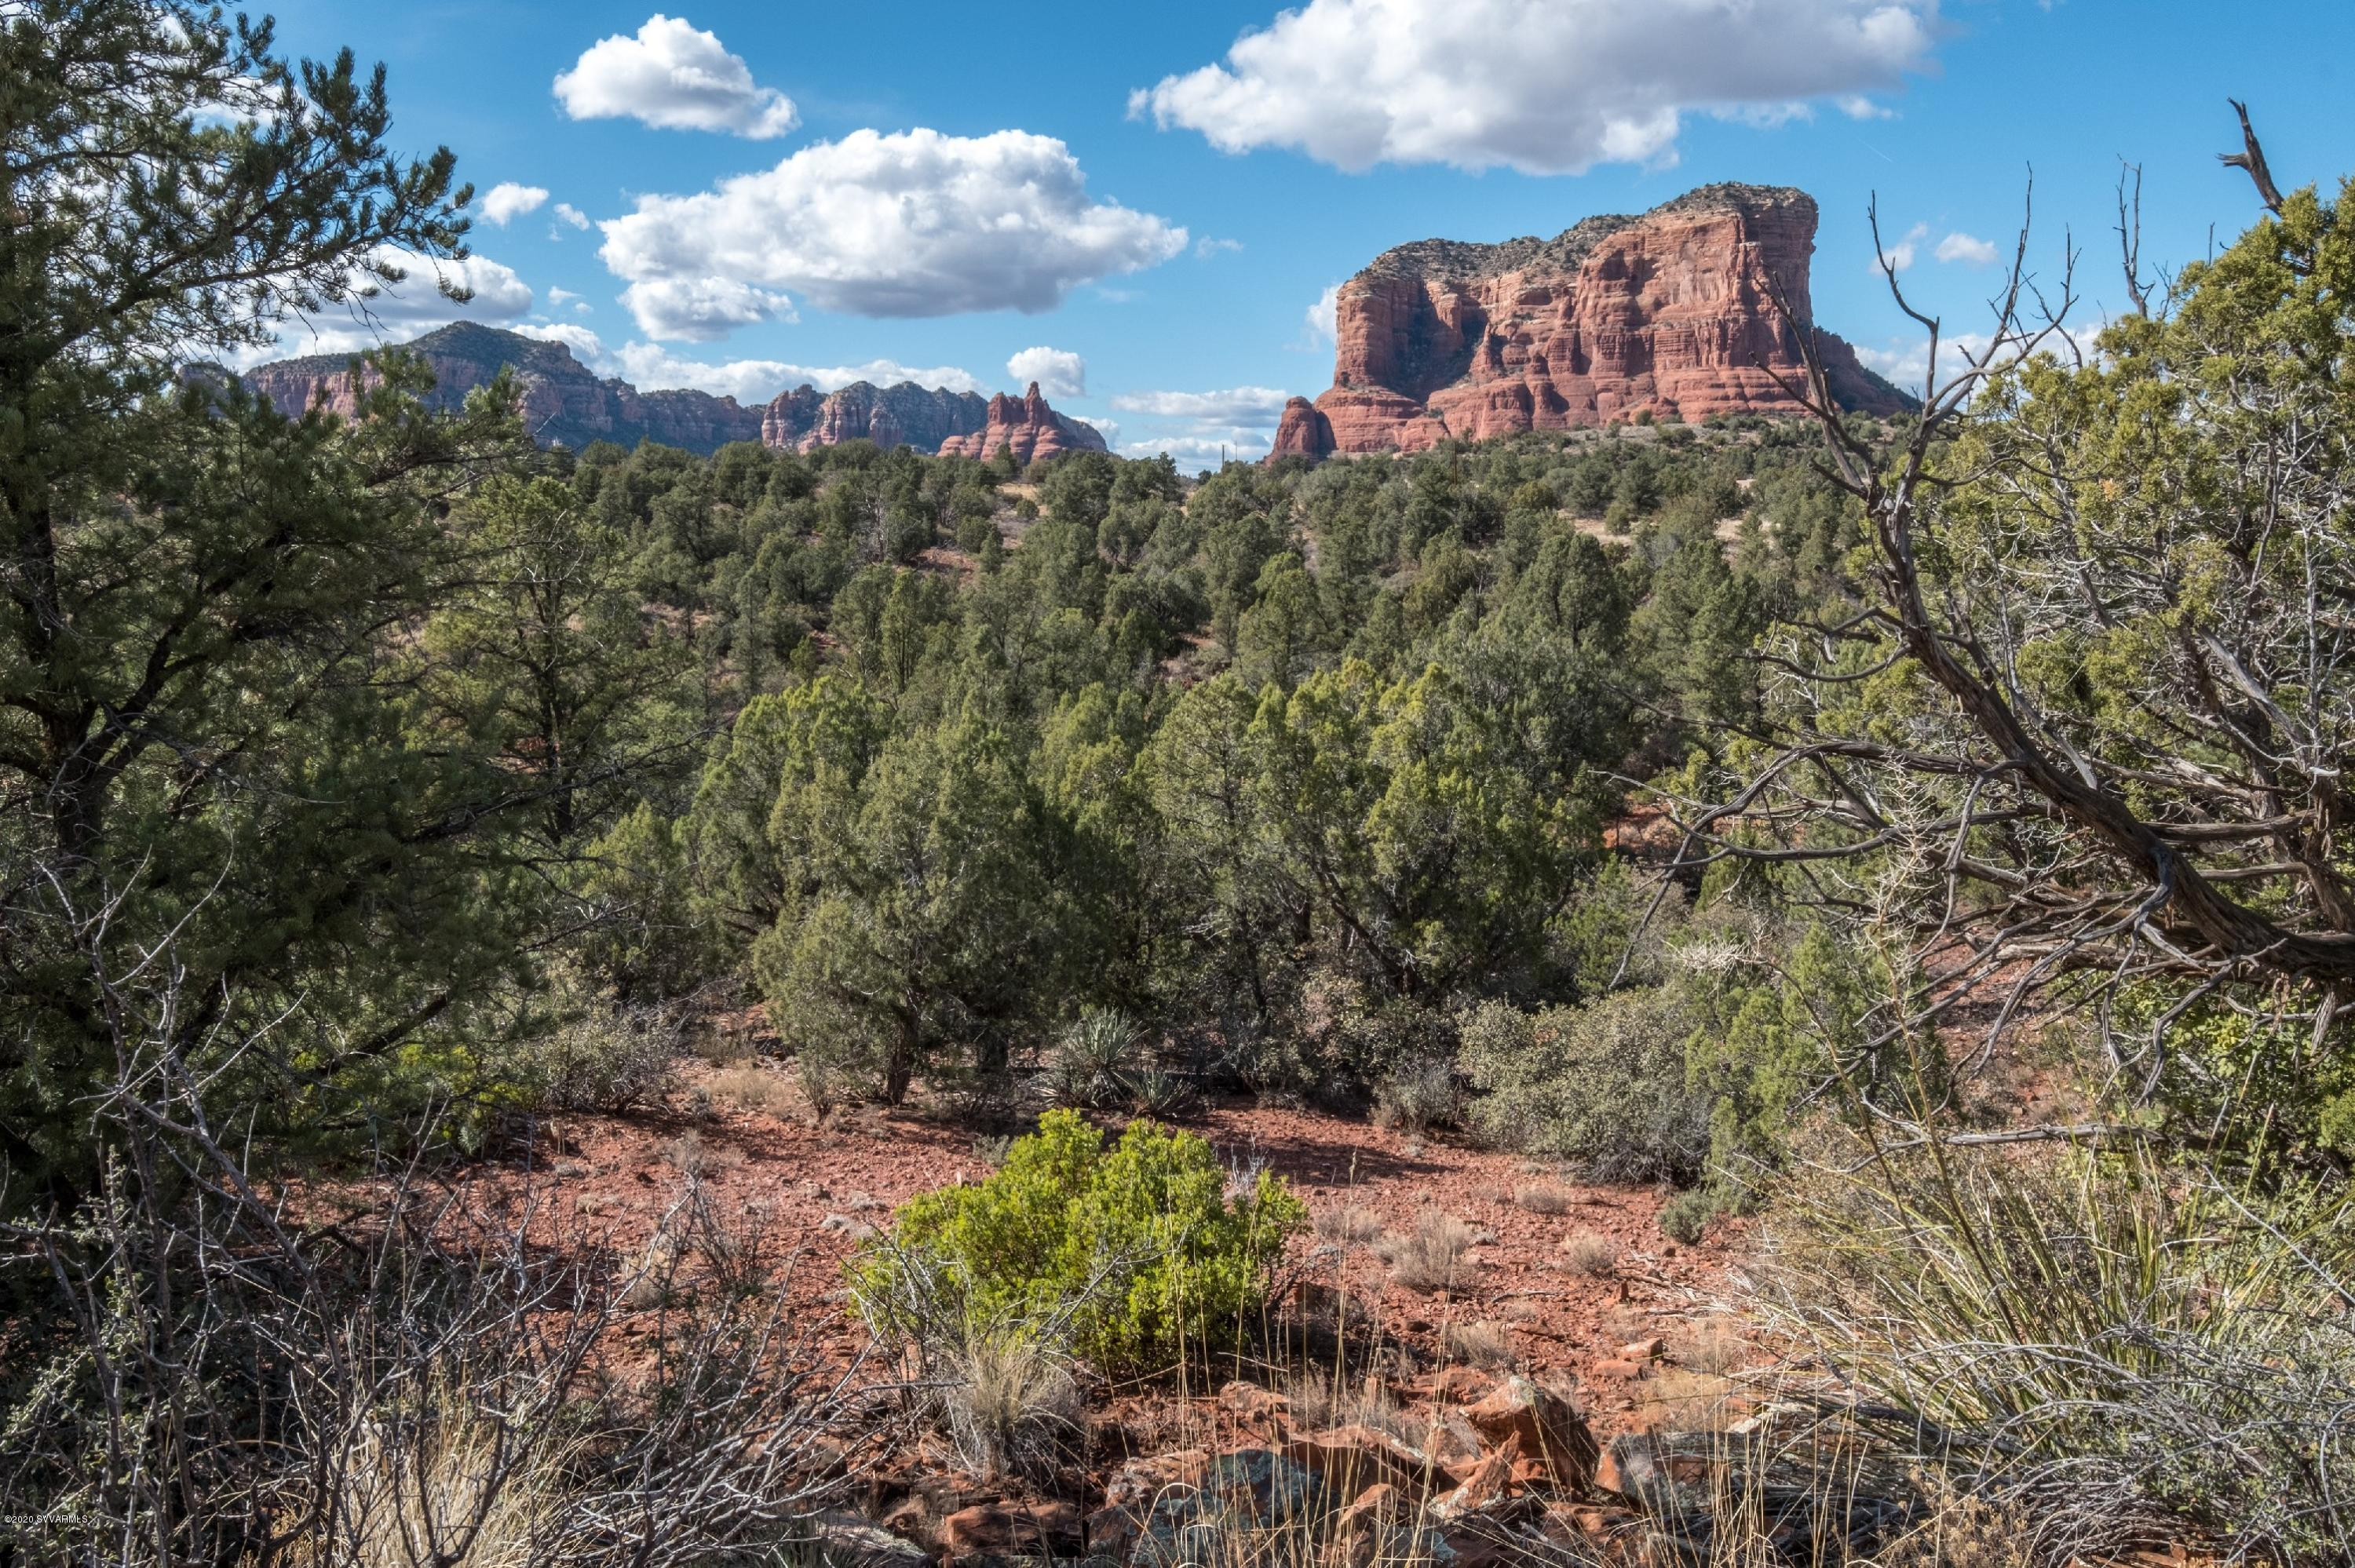 105 Granite Mountain Sedona, AZ 86351